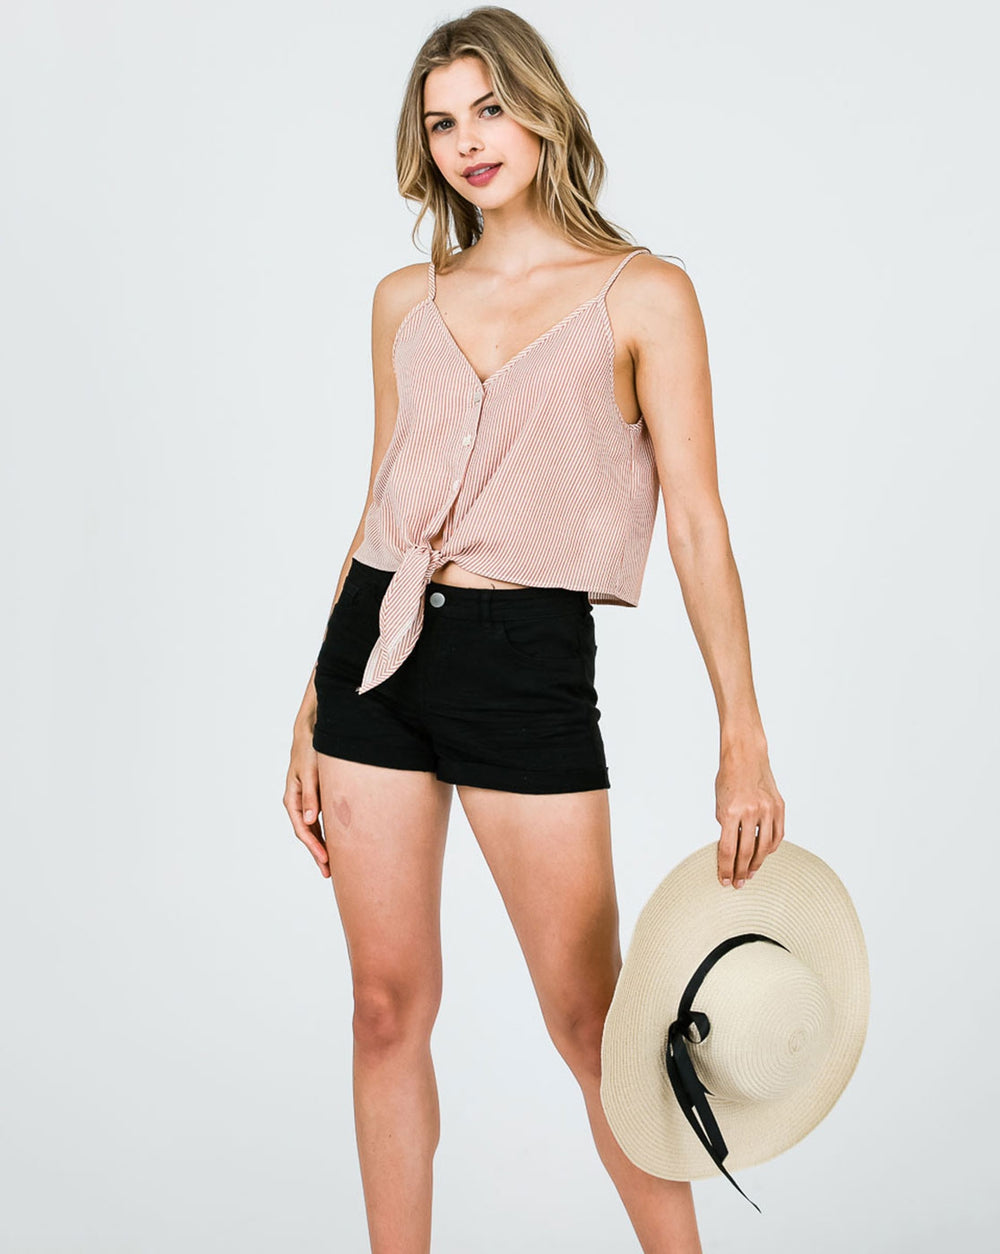 Pink Open Shoulder Cami Crop Top Striped Tie with Button Down Siin Bees